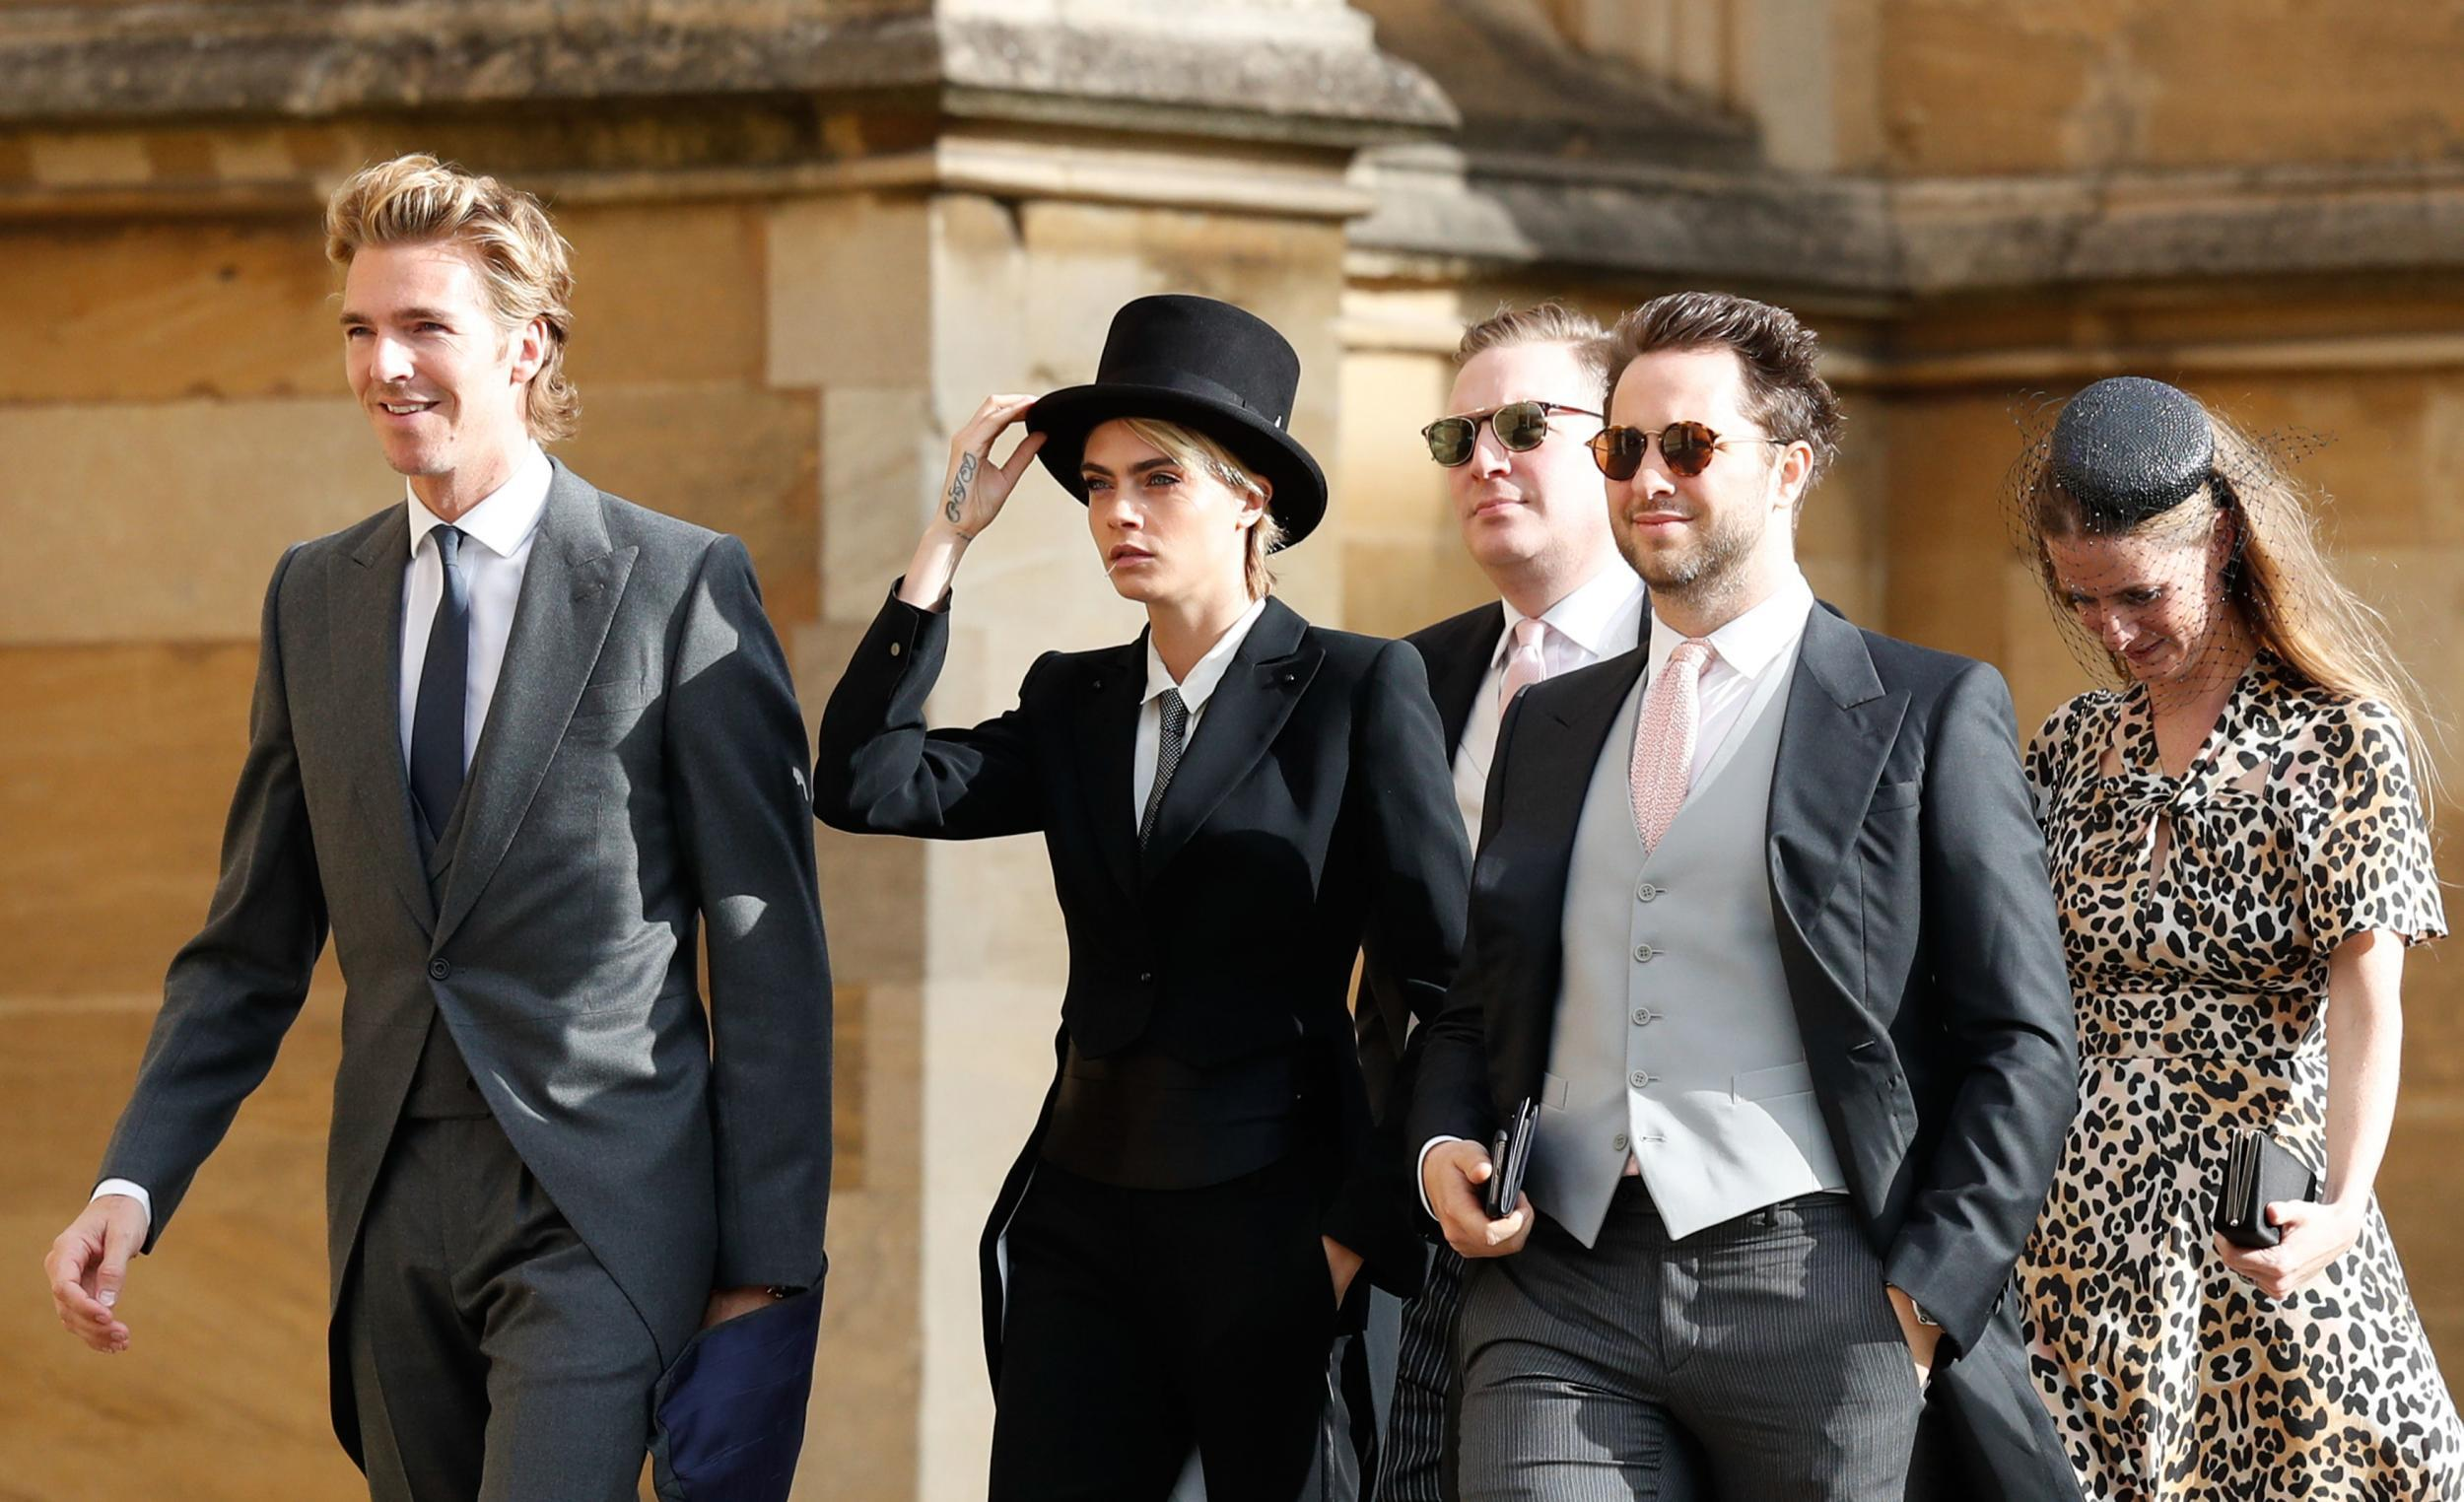 Princess Eugenies Wedding All The Guests From Demi Moore To Kate